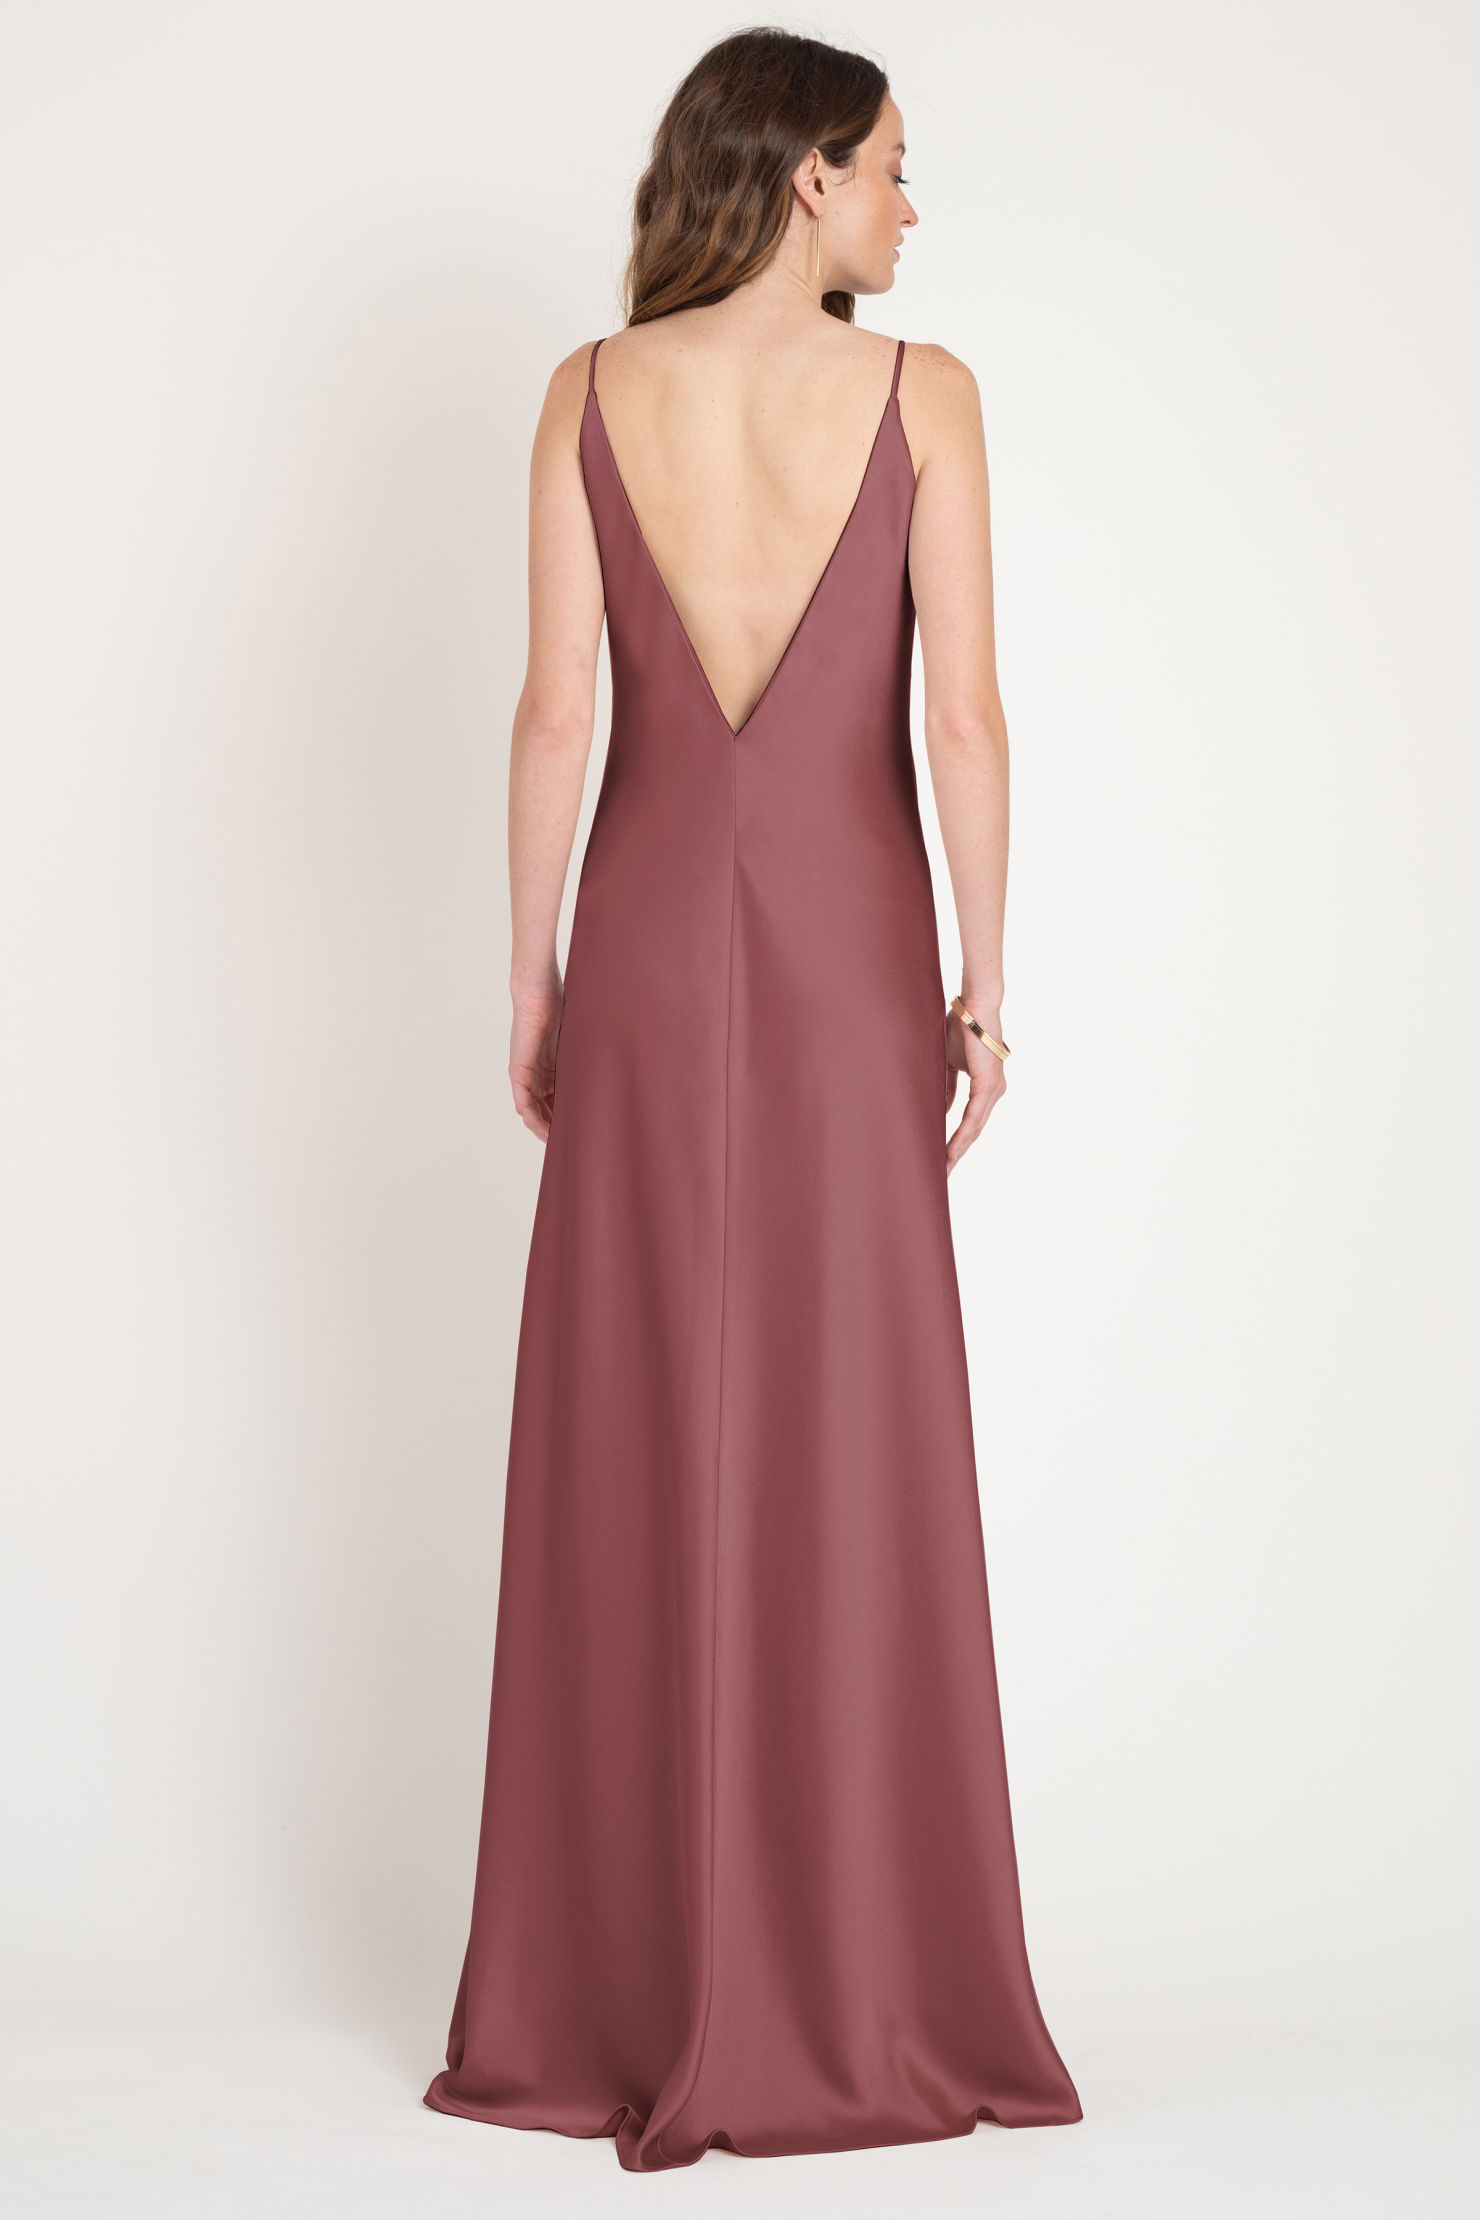 Ida Bridesmaids Dress by Jenny Yoo - Cinnamon Rose